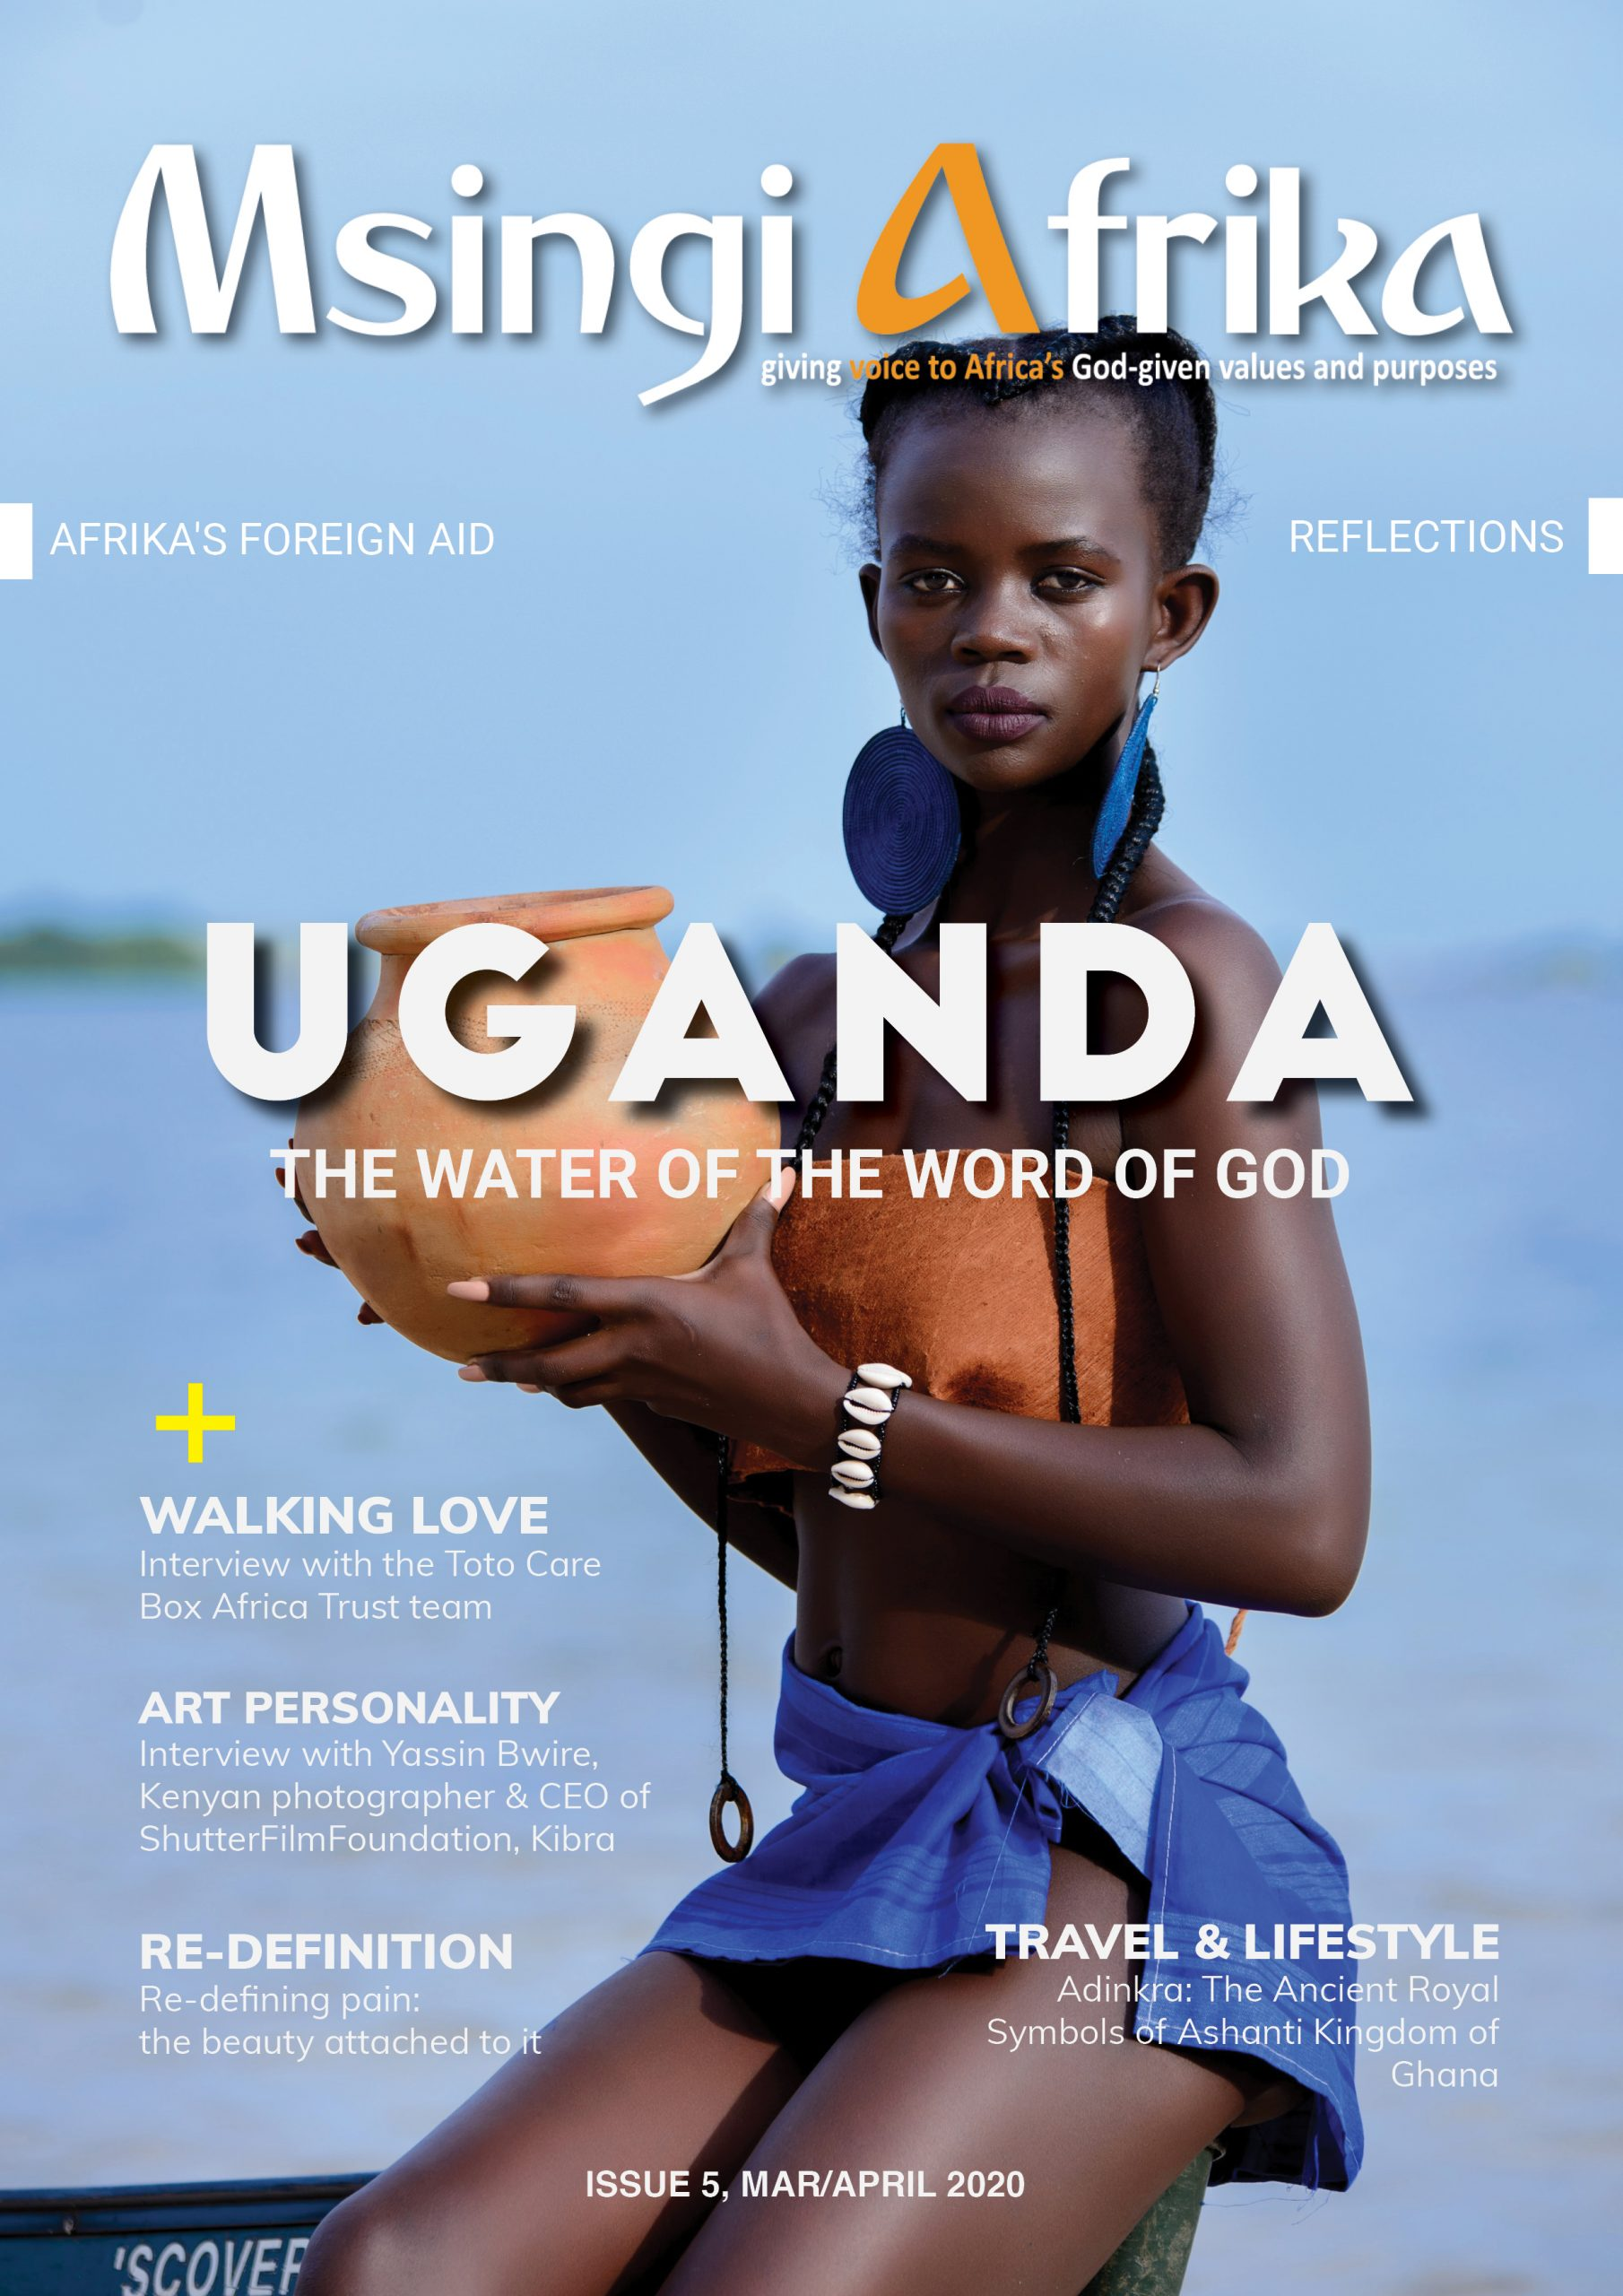 MSINGI-AFRIKA-MAGAZINE-ISSUE-FIVE-Front-Cover-scaled.jpg